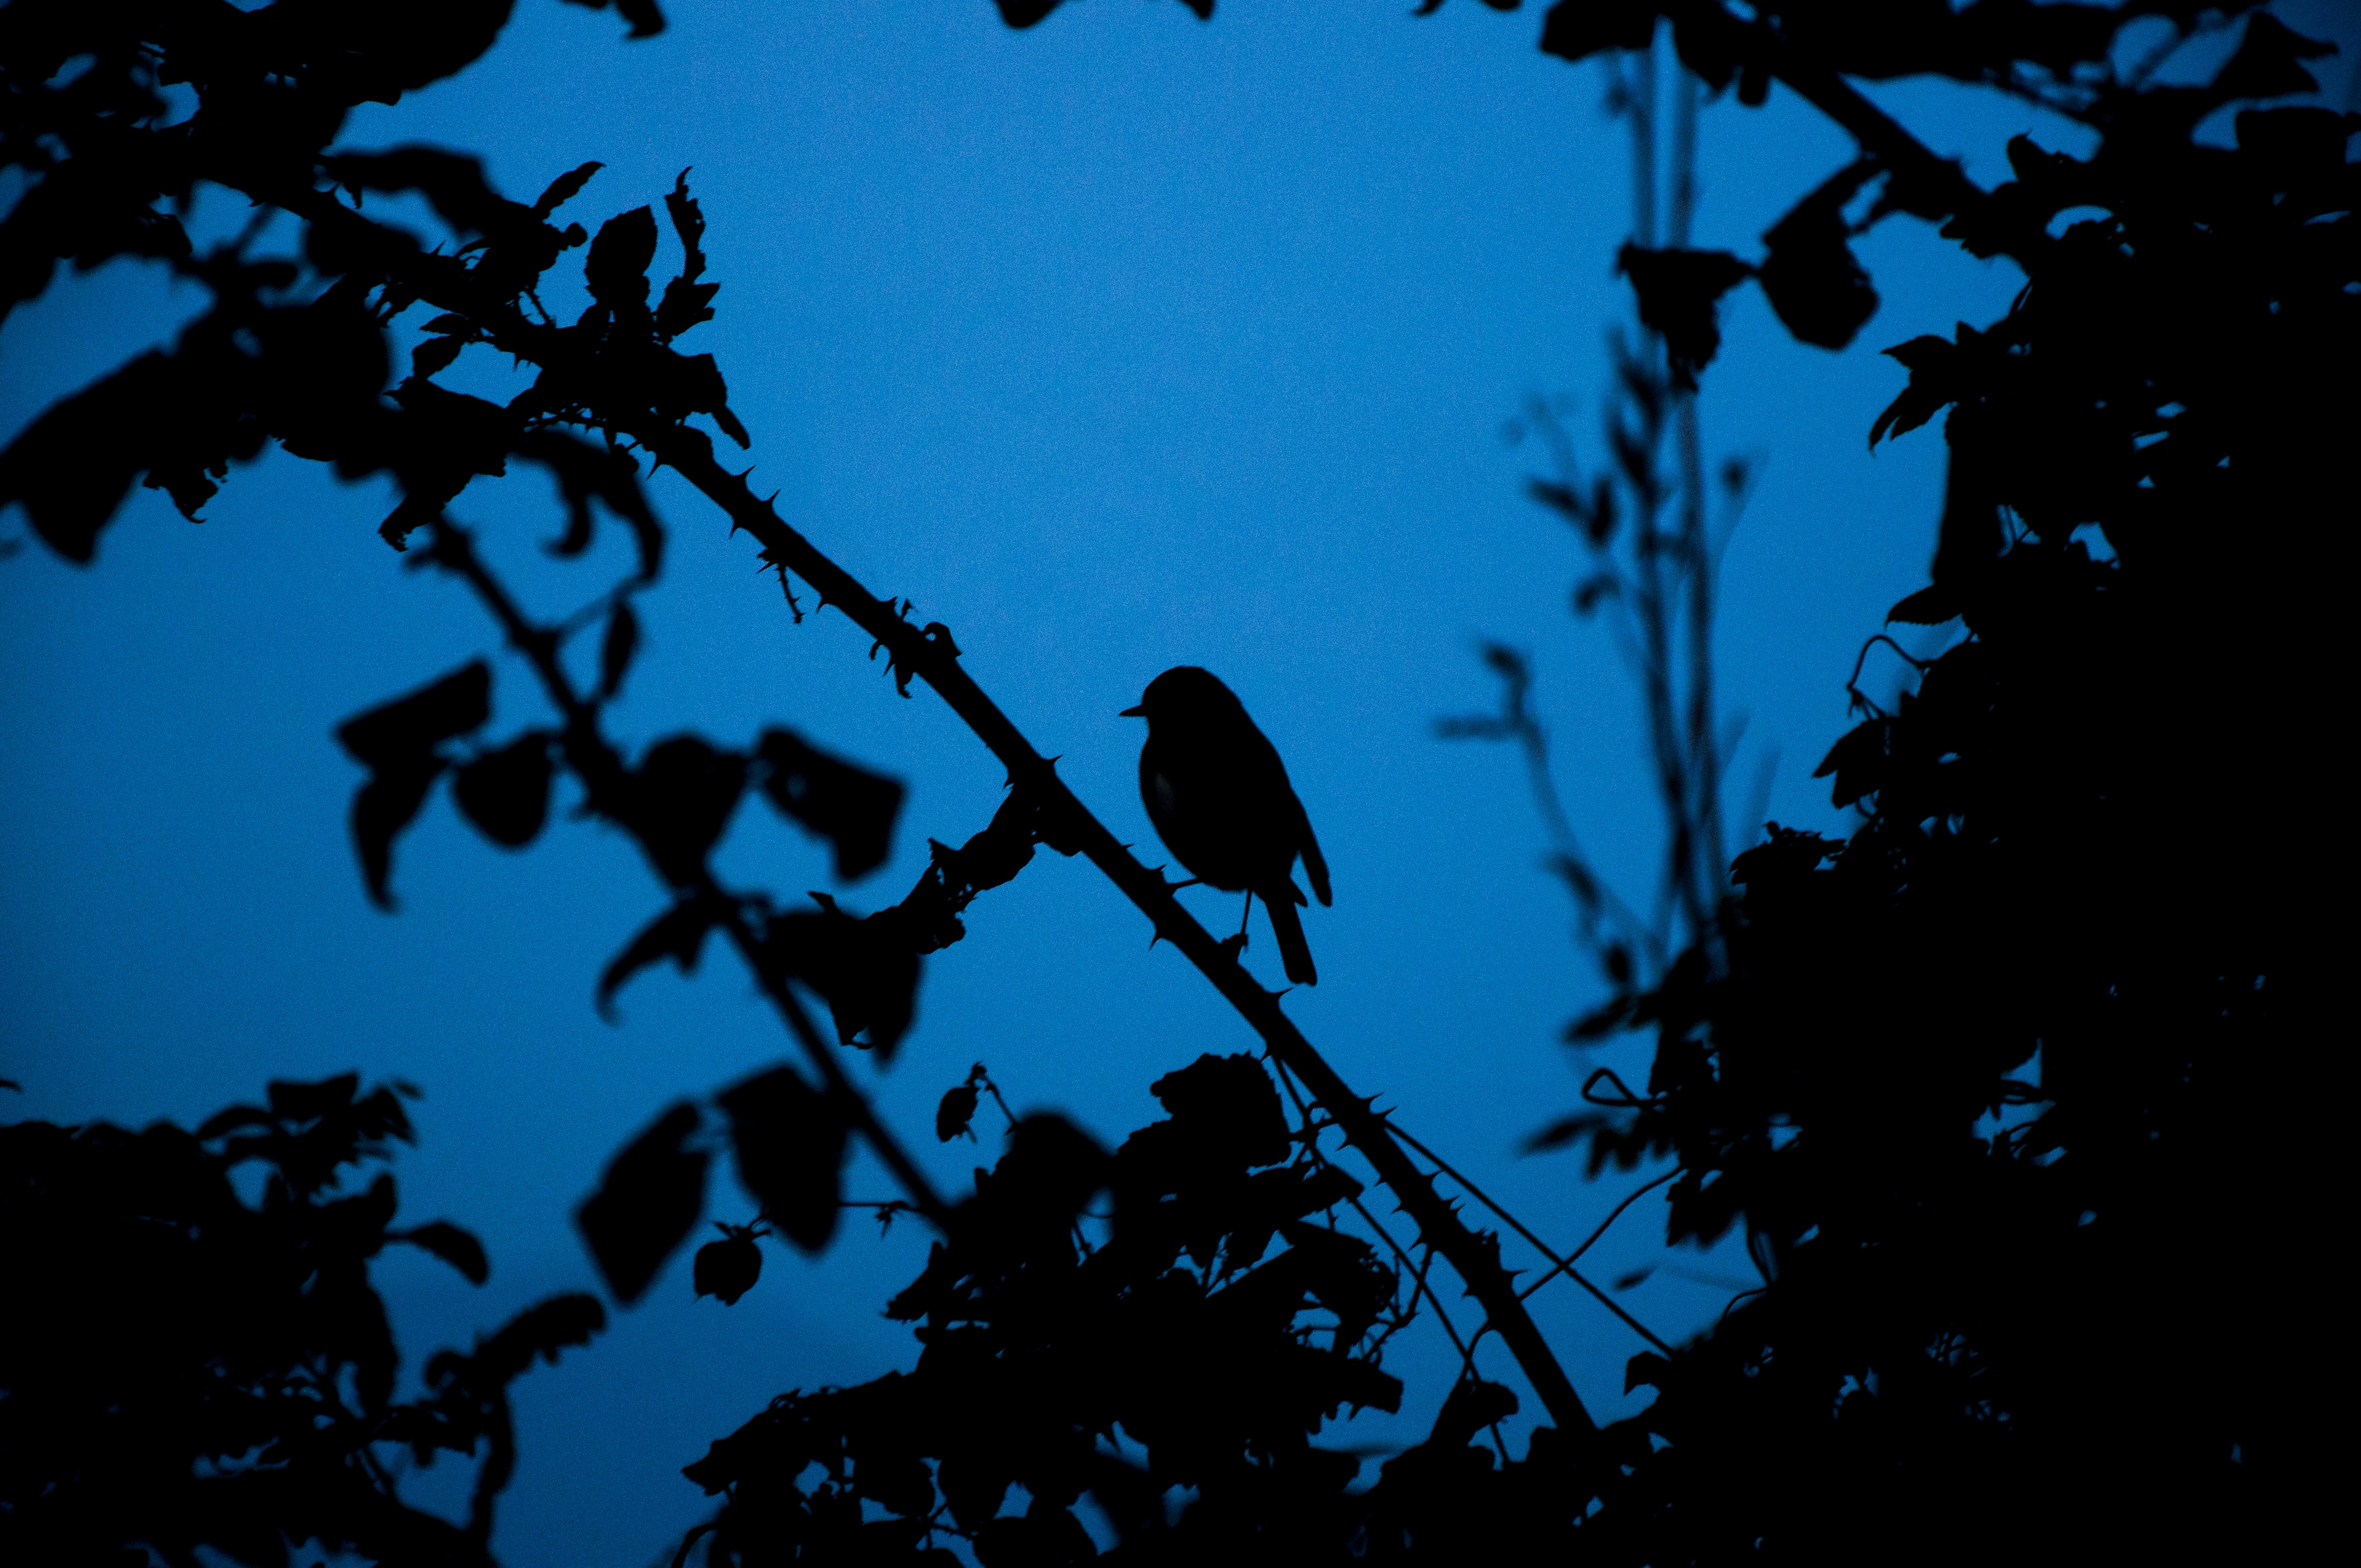 silhouette of a bird on tree branch